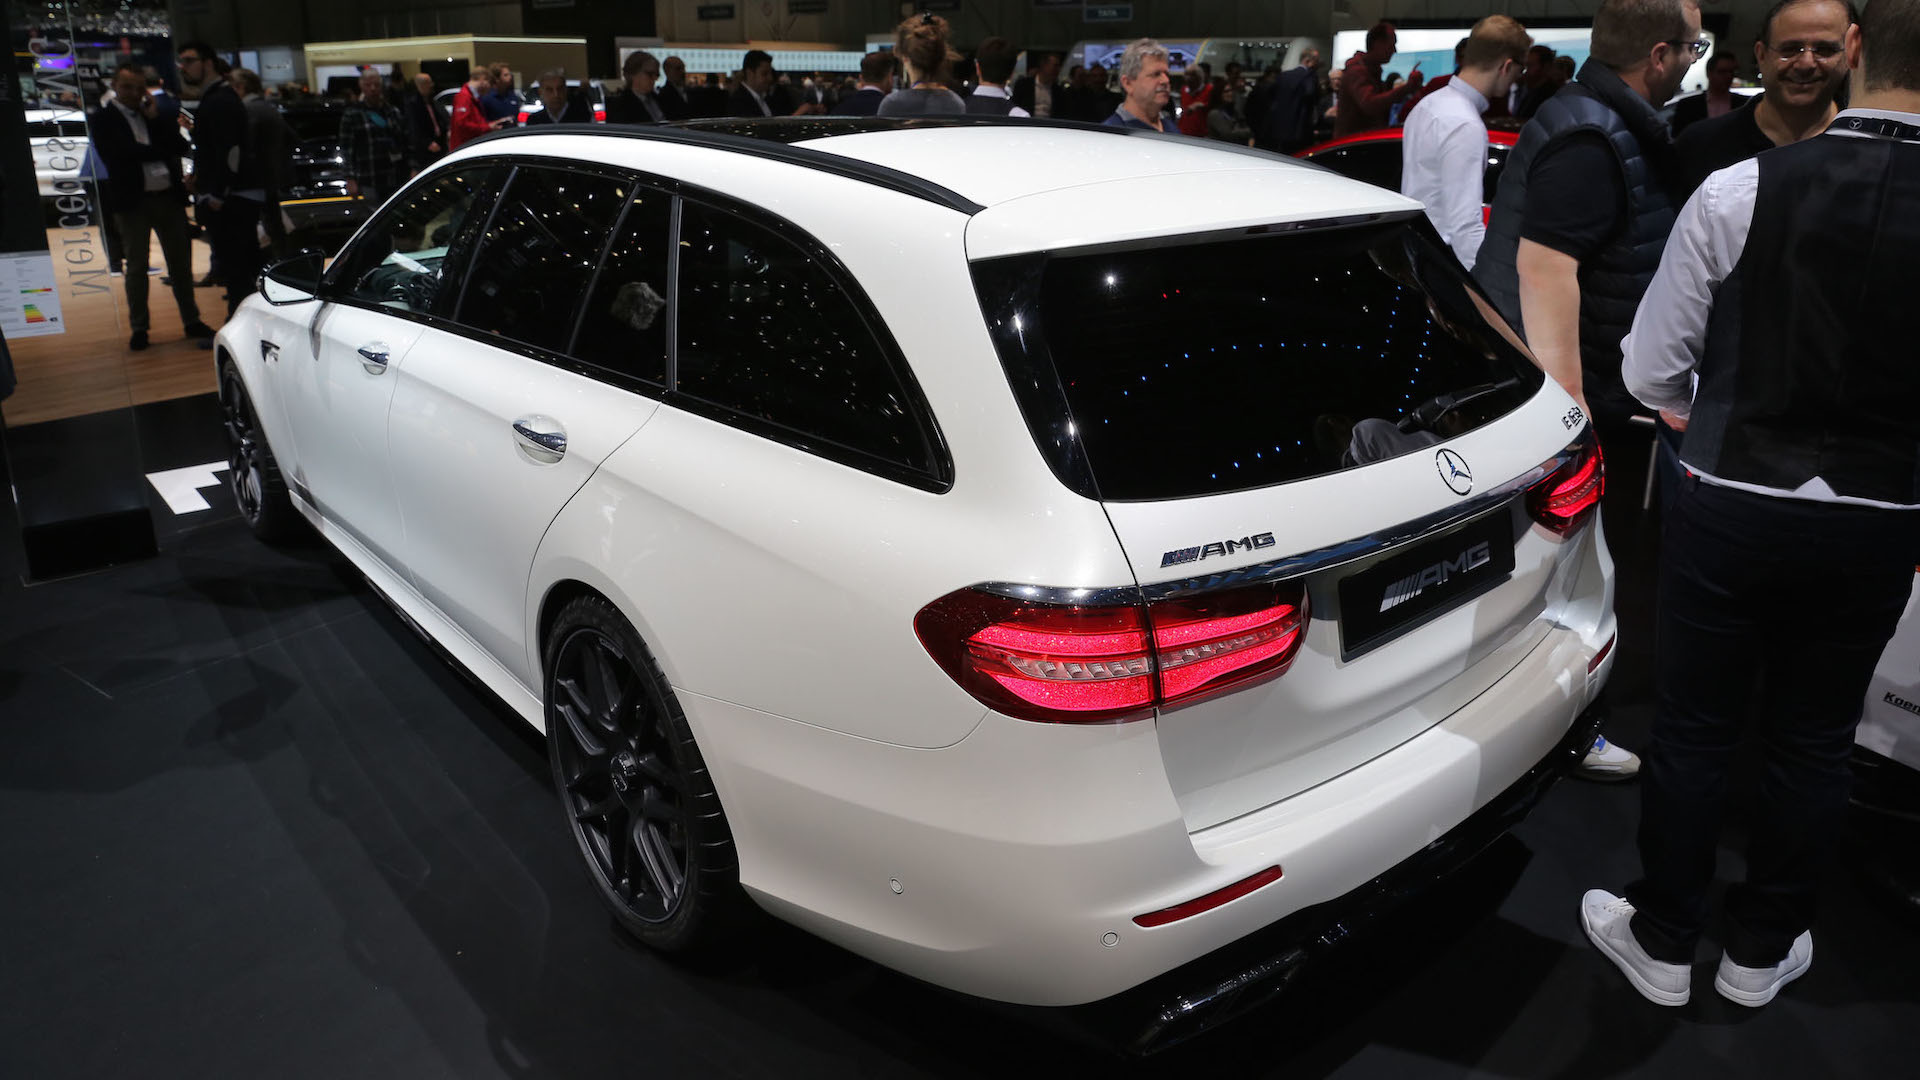 https://icdn-3.motor1.com/images/mgl/o7Gb0/s1/2018-mercedes-amg-e63-s-wagon.jpg